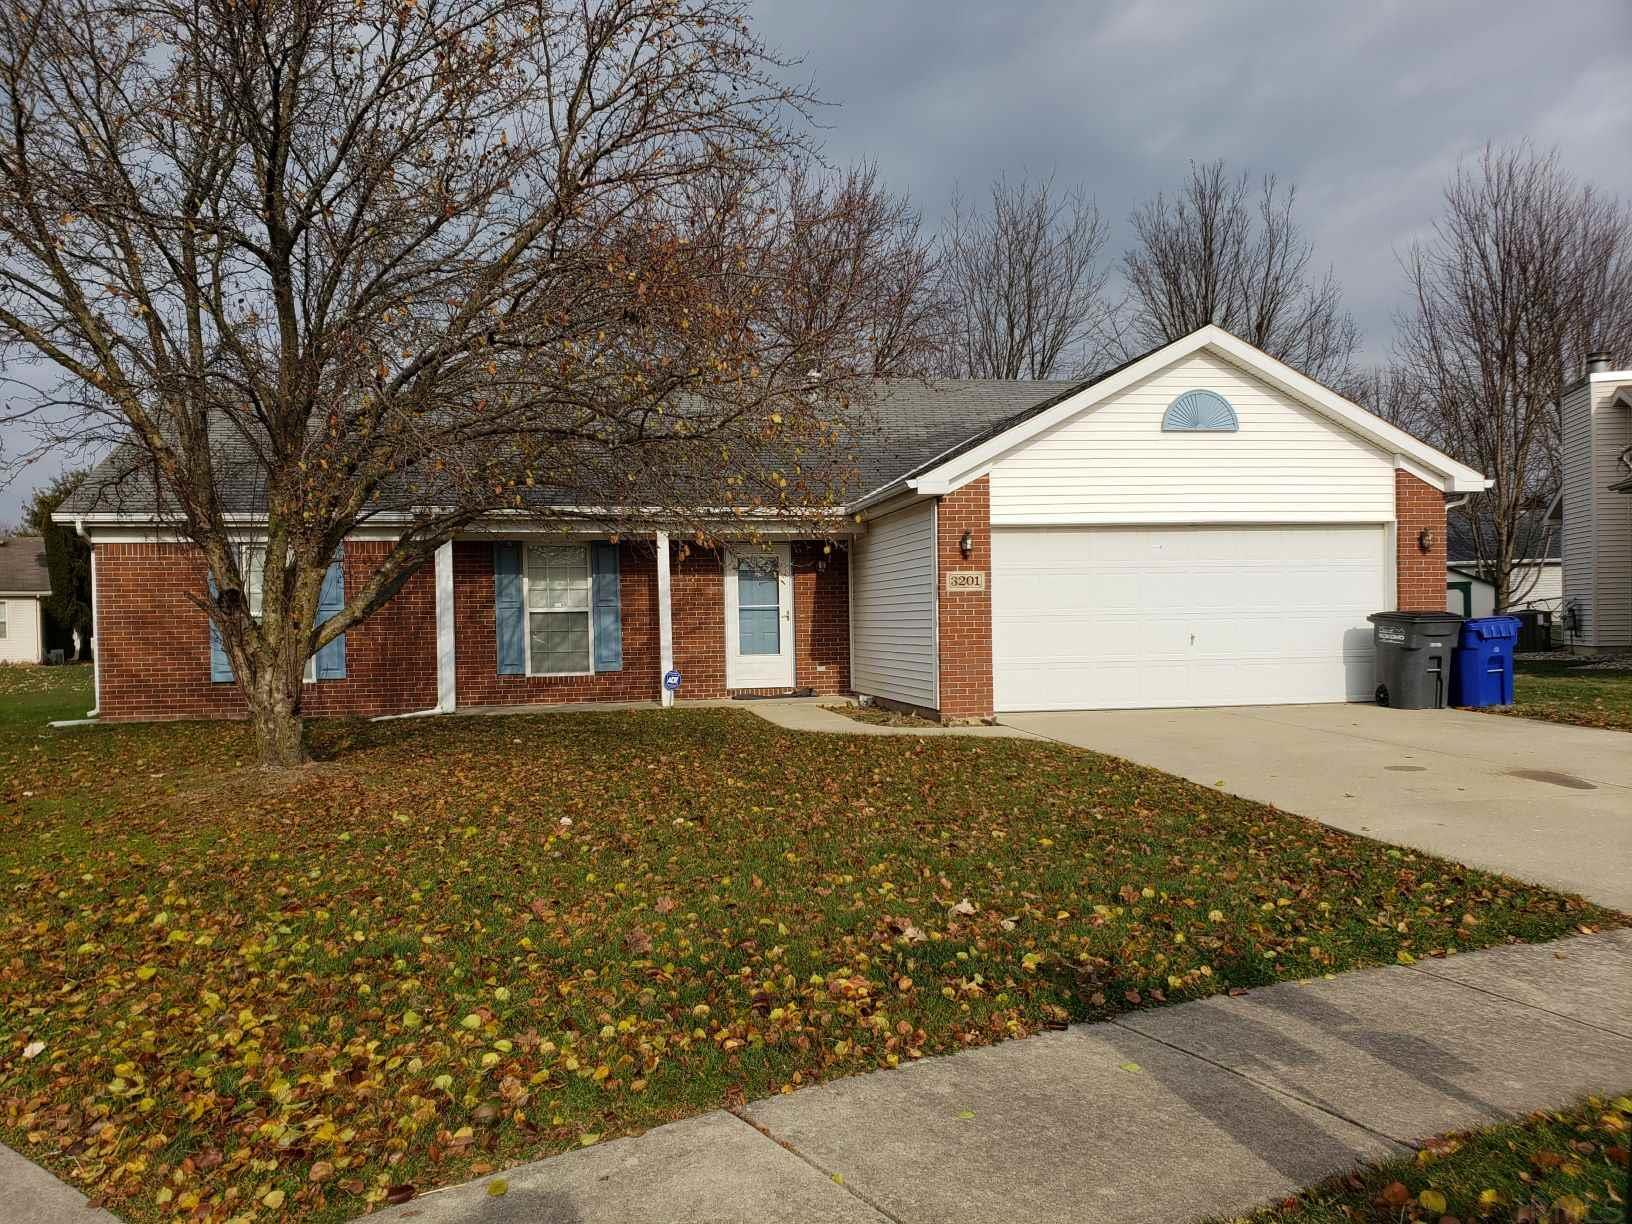 3201 Brighton, Kokomo, IN 46902-7810